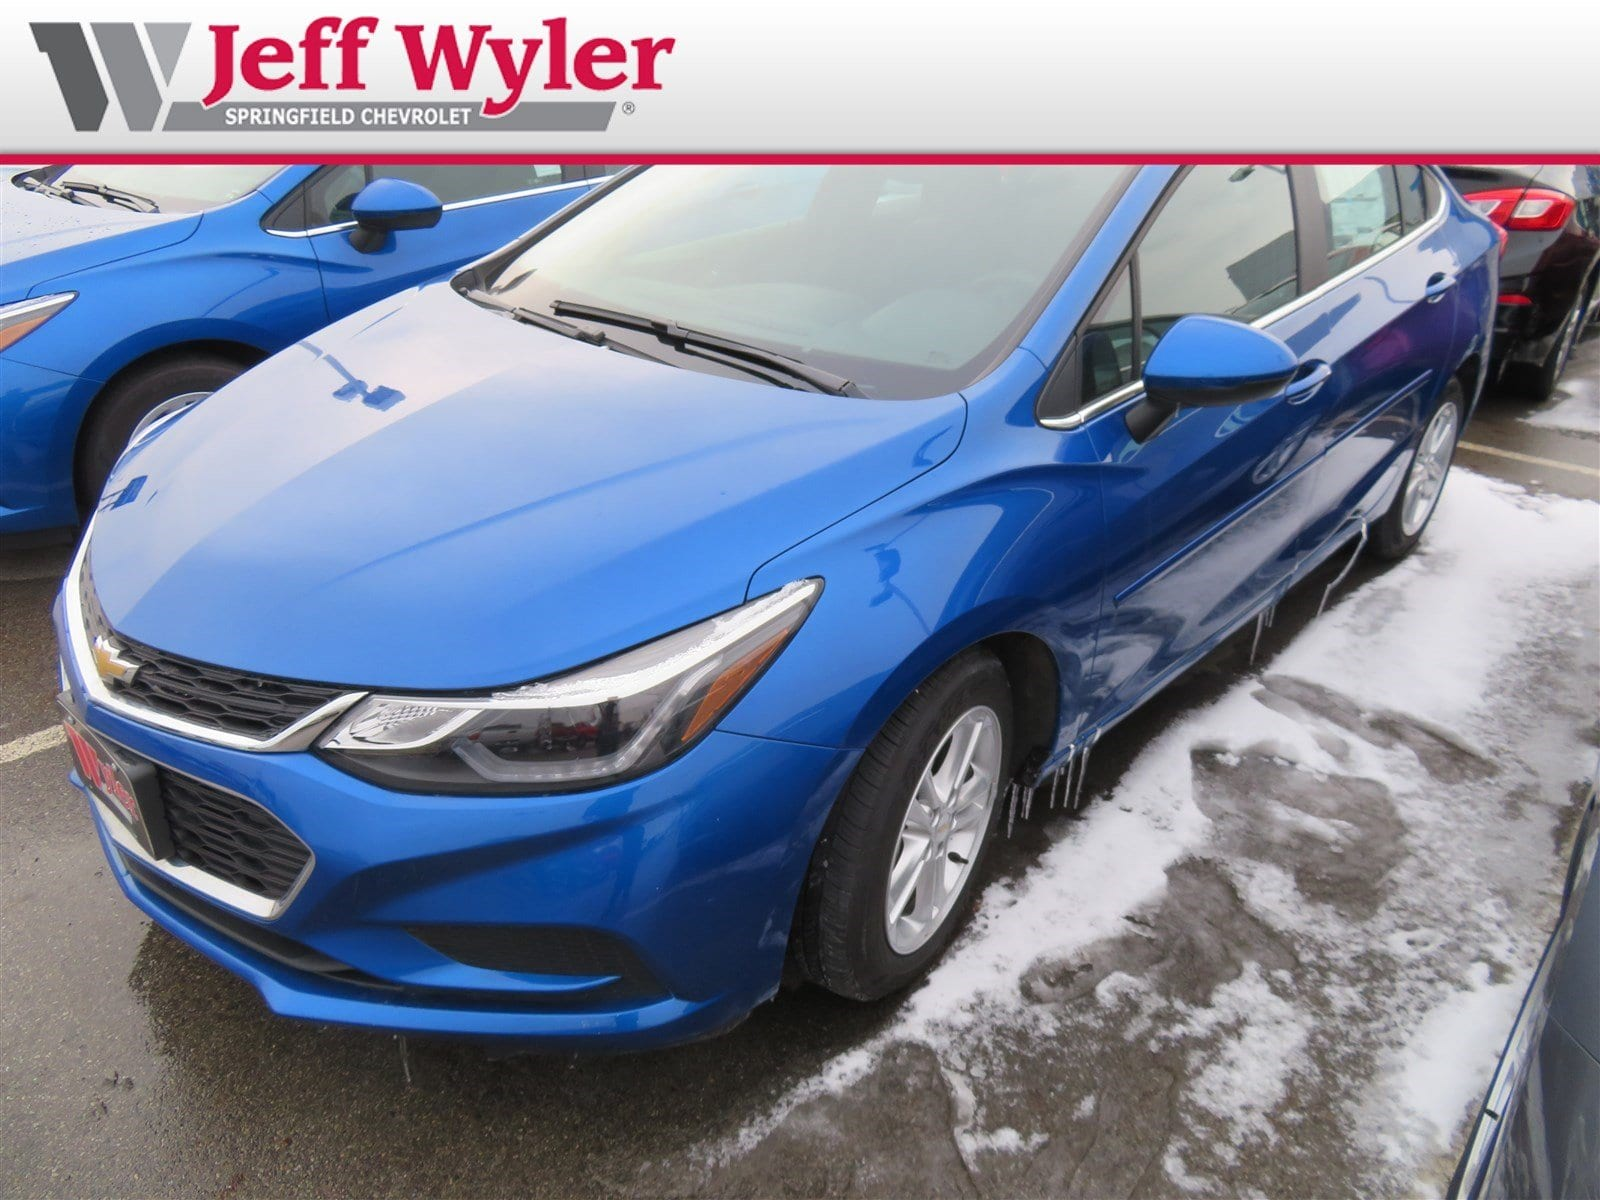 Cheap Used Cars for Sale New Jeff Wyler Springfield Auto Mall